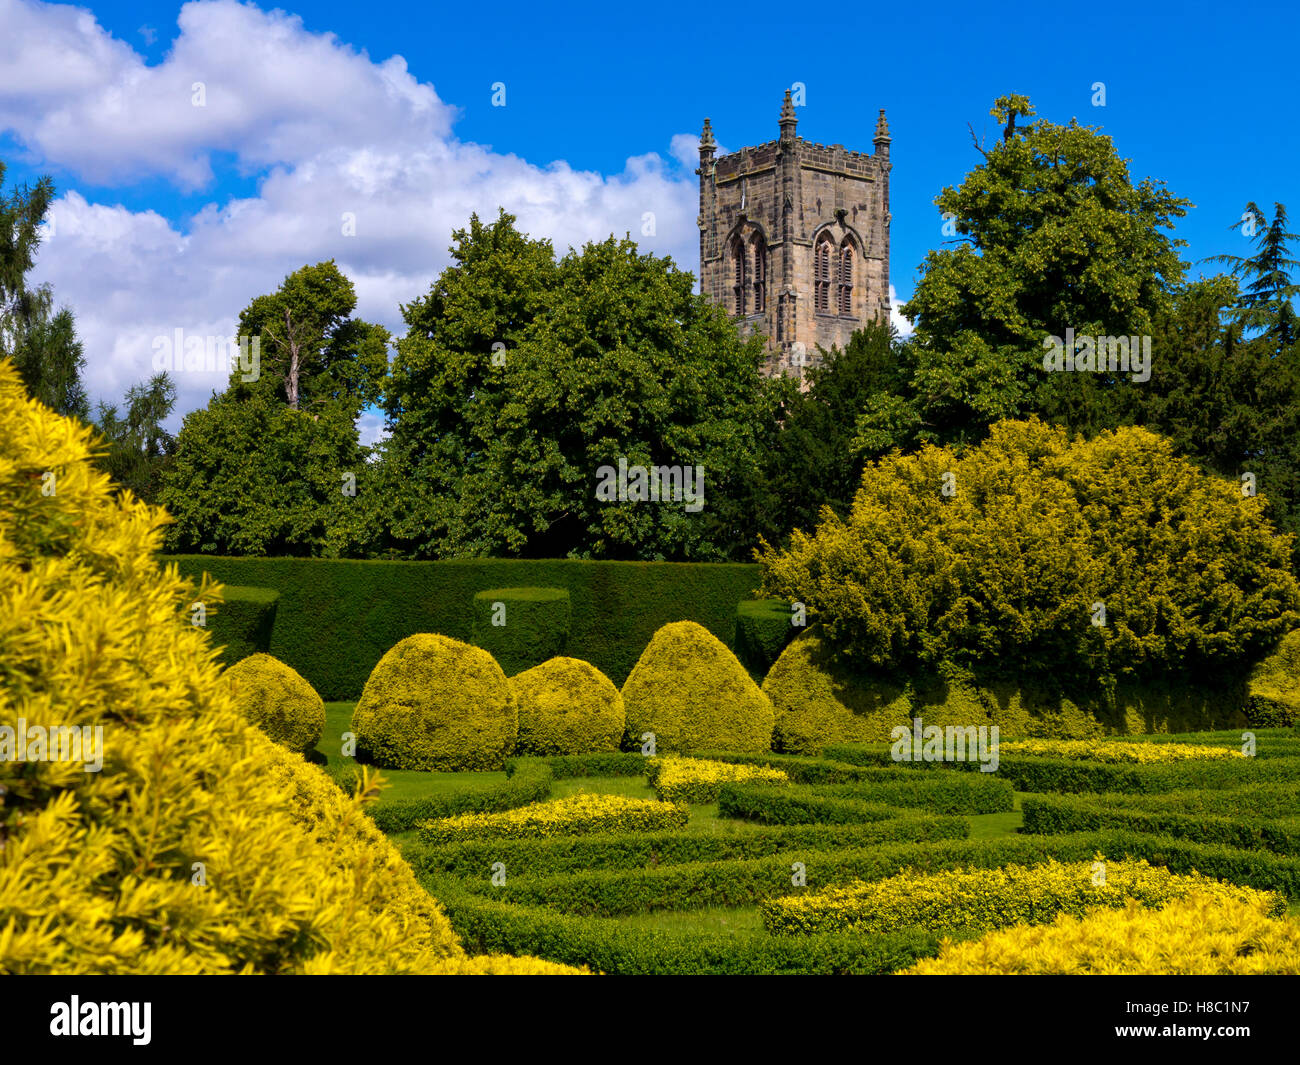 Church in the grounds of Elvaston Country Park near Derby Derbyshire England UK with Italian Garden in foreground - Stock Image